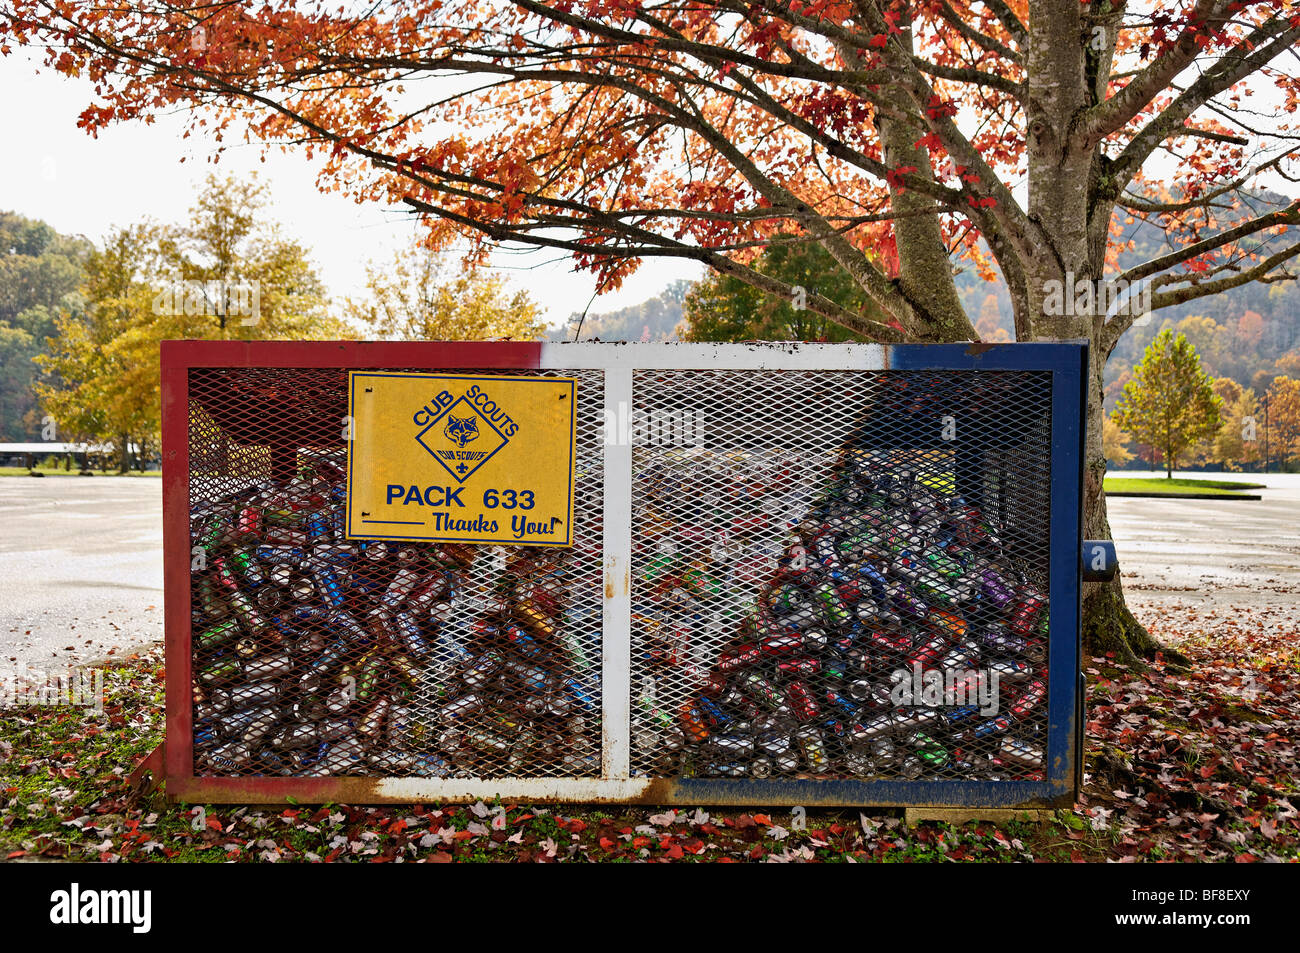 Soda Cans in Aluminum Can Recycling Bin at Paintsville Lake in Johnson County, Kentucky - Stock Image